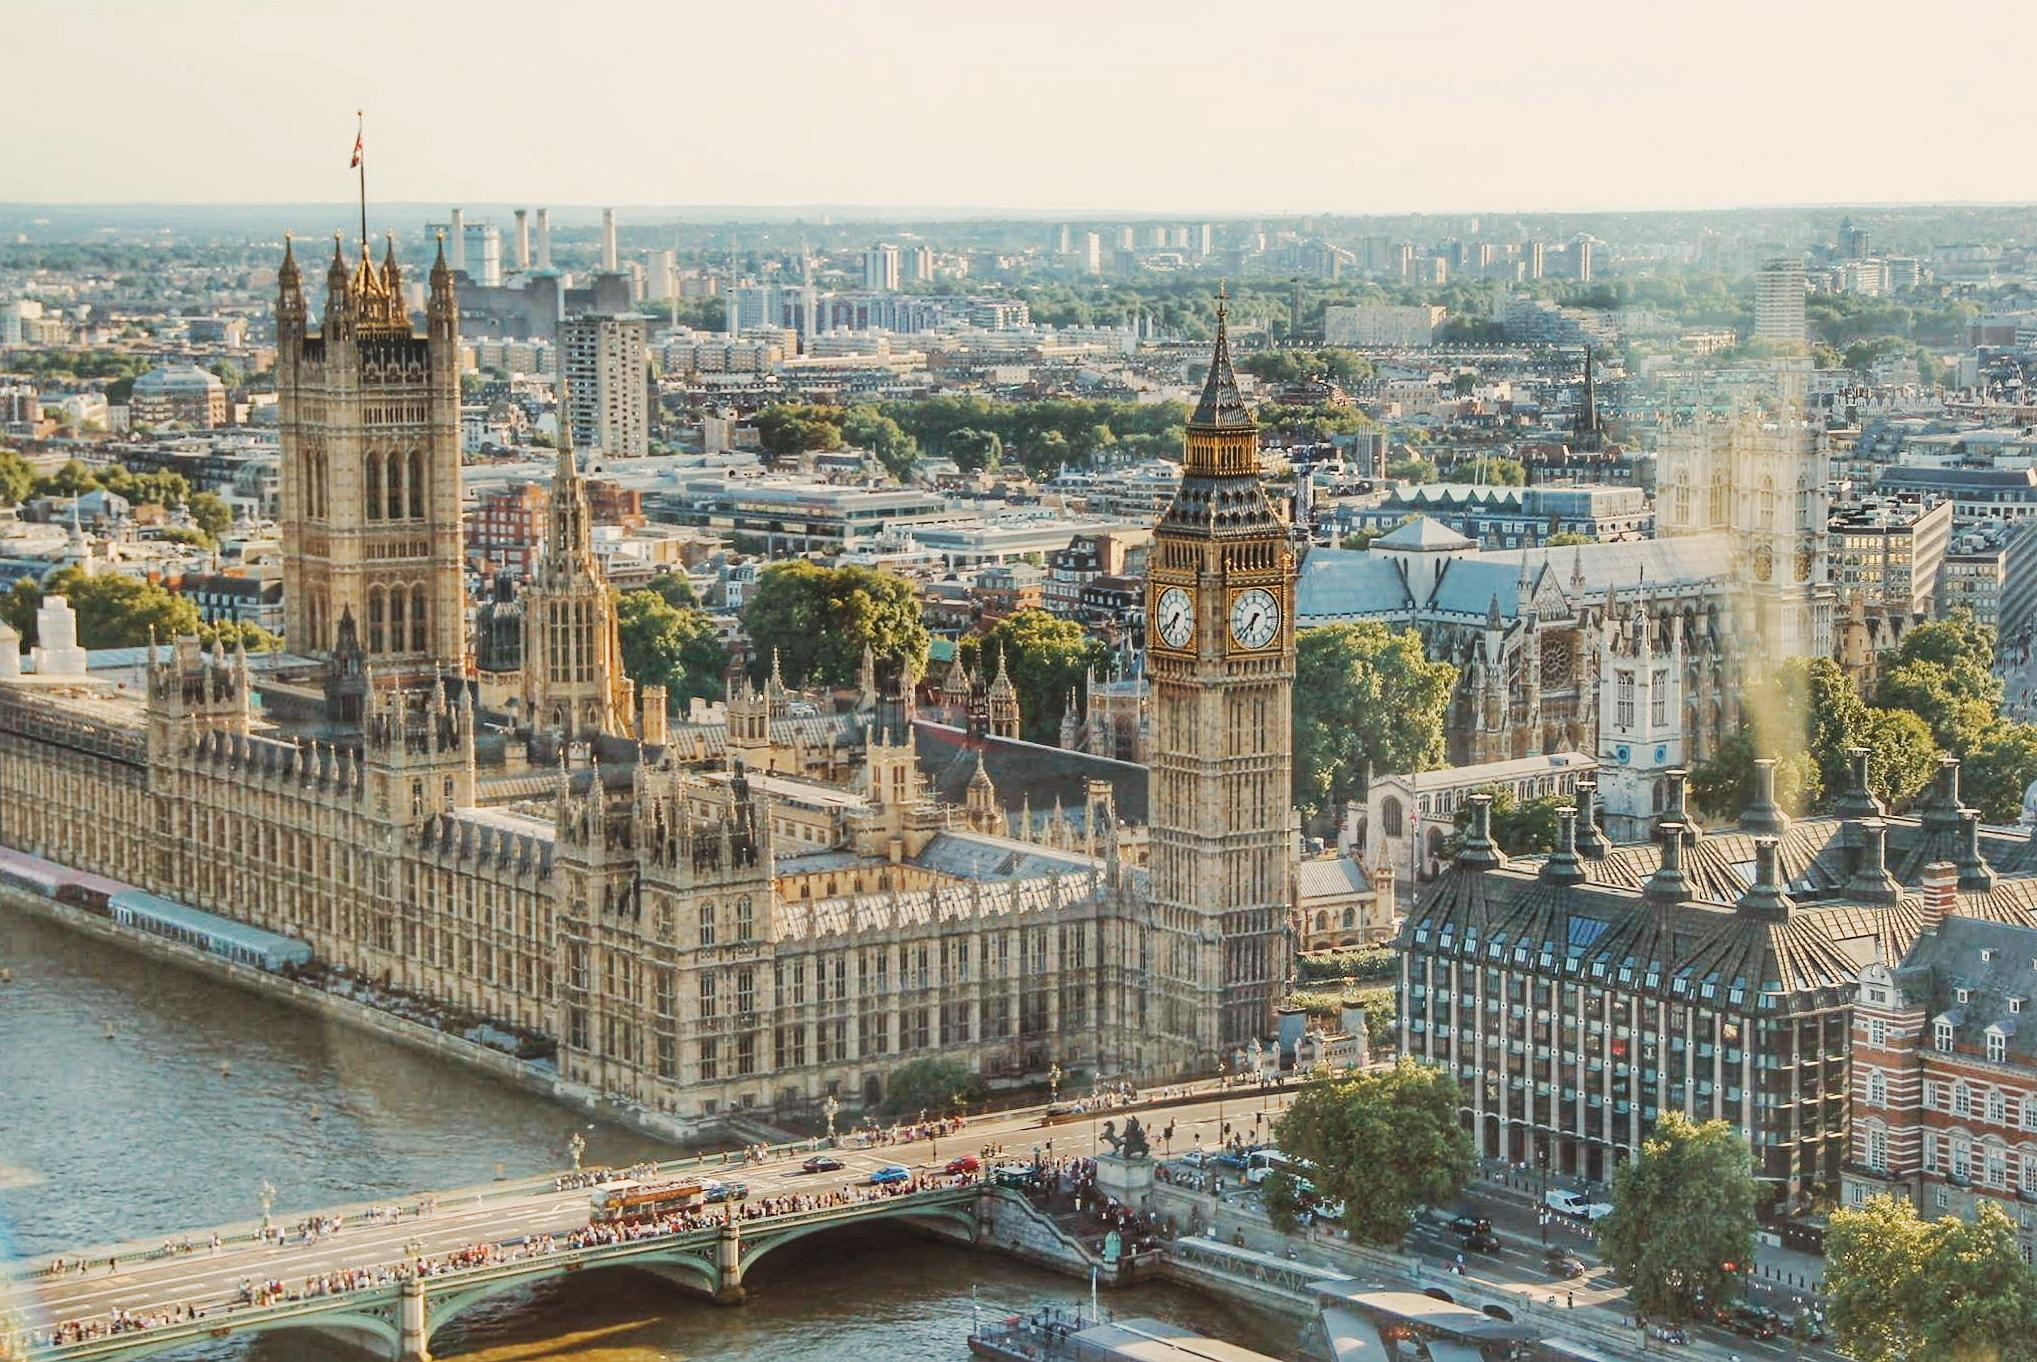 Image of Big Ben and surroundings in London, England